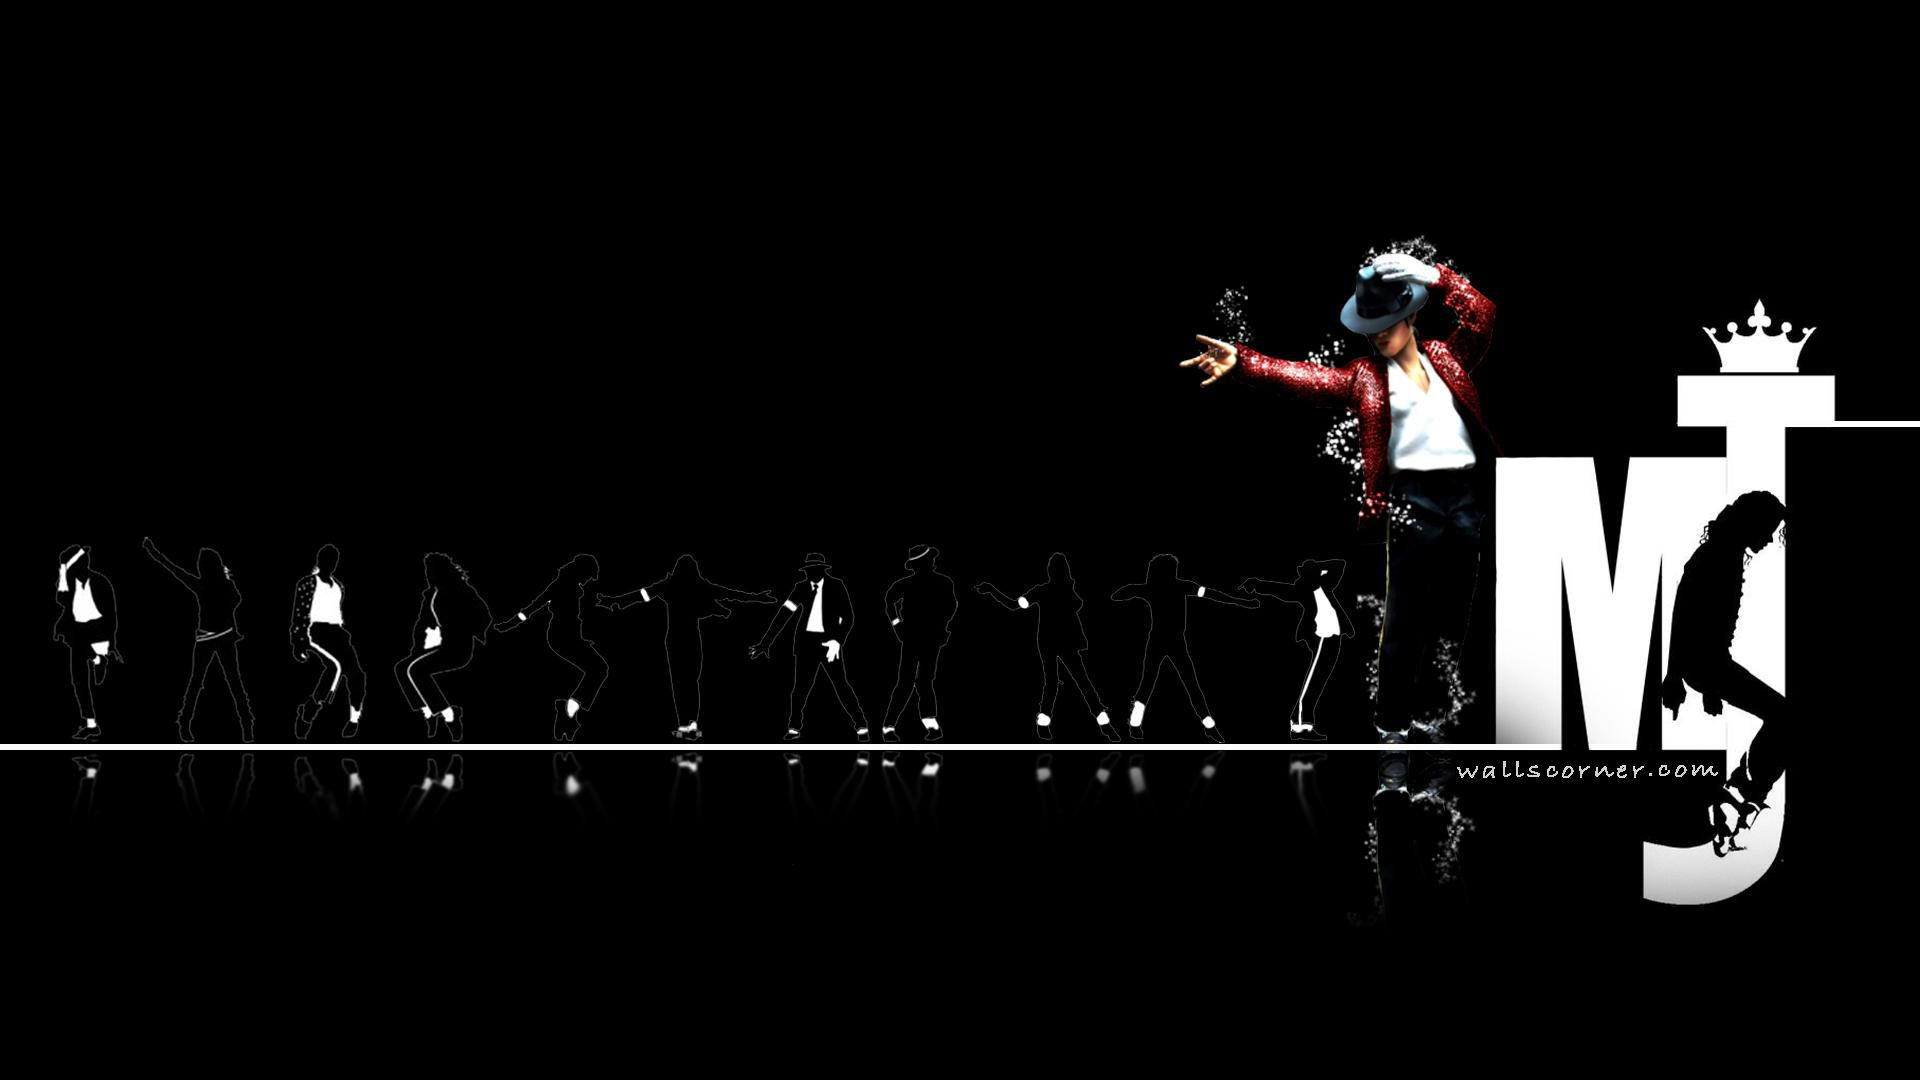 Michael Jackson Moonwalk Wallpapers Full Hd For Desktop Wallpaper 1920x1080